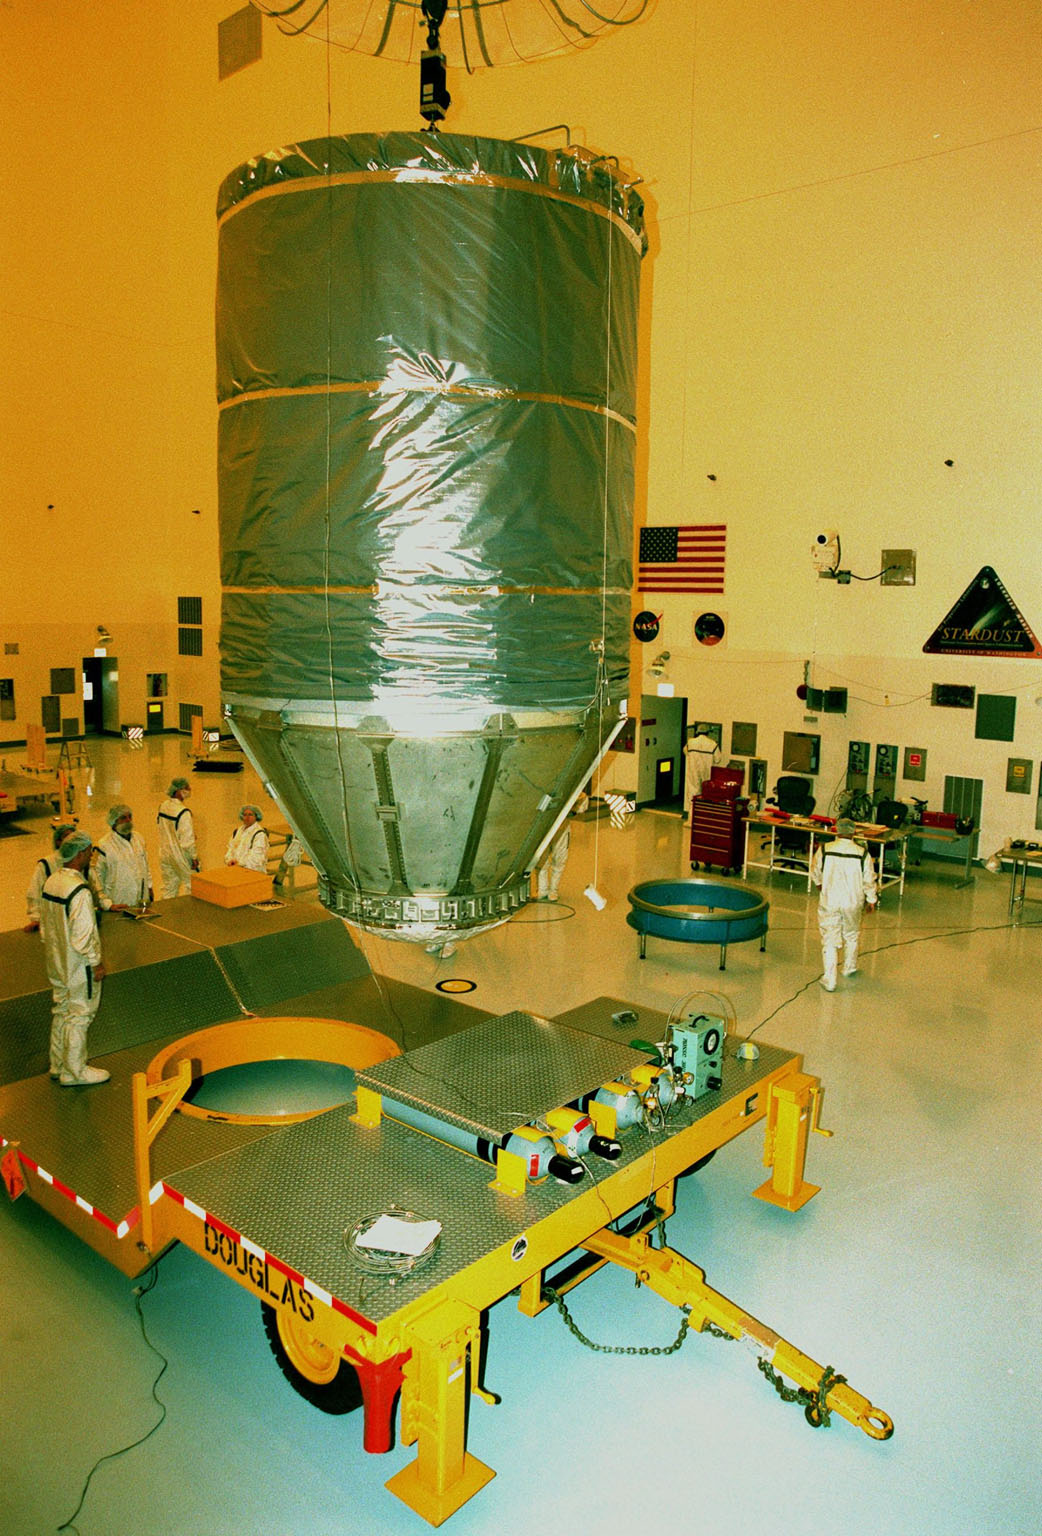 Completely enclosed in a protective canister, the spacecraft Stardust is moved by a crane toward a transporter in the Payload Hazardous Servicing Facility. Stardust is being moved to Launch Pad 17-A, Cape Canaveral Air Station, for launch preparations. The spacecraft is targeted for liftoff on Feb. 6 aboard a Boeing Delta II rocket for a close encounter with the comet Wild 2 in January 2004. Using a silicon-based substance called aerogel, Stardust will capture comet particles flying off the nucleus of the comet. The spacecraft also will bring back samples of interstellar dust. These materials consist of ancient pre-solar interstellar grains and other remnants left over from the formation of the solar system. Scientists expect their analysis to provide important insights into the evolution of the sun and planets and possibly into the origin of life itself. The collected samples will return to Earth in a sample return capsule to be jettisoned as Stardust swings by Earth in January 2006